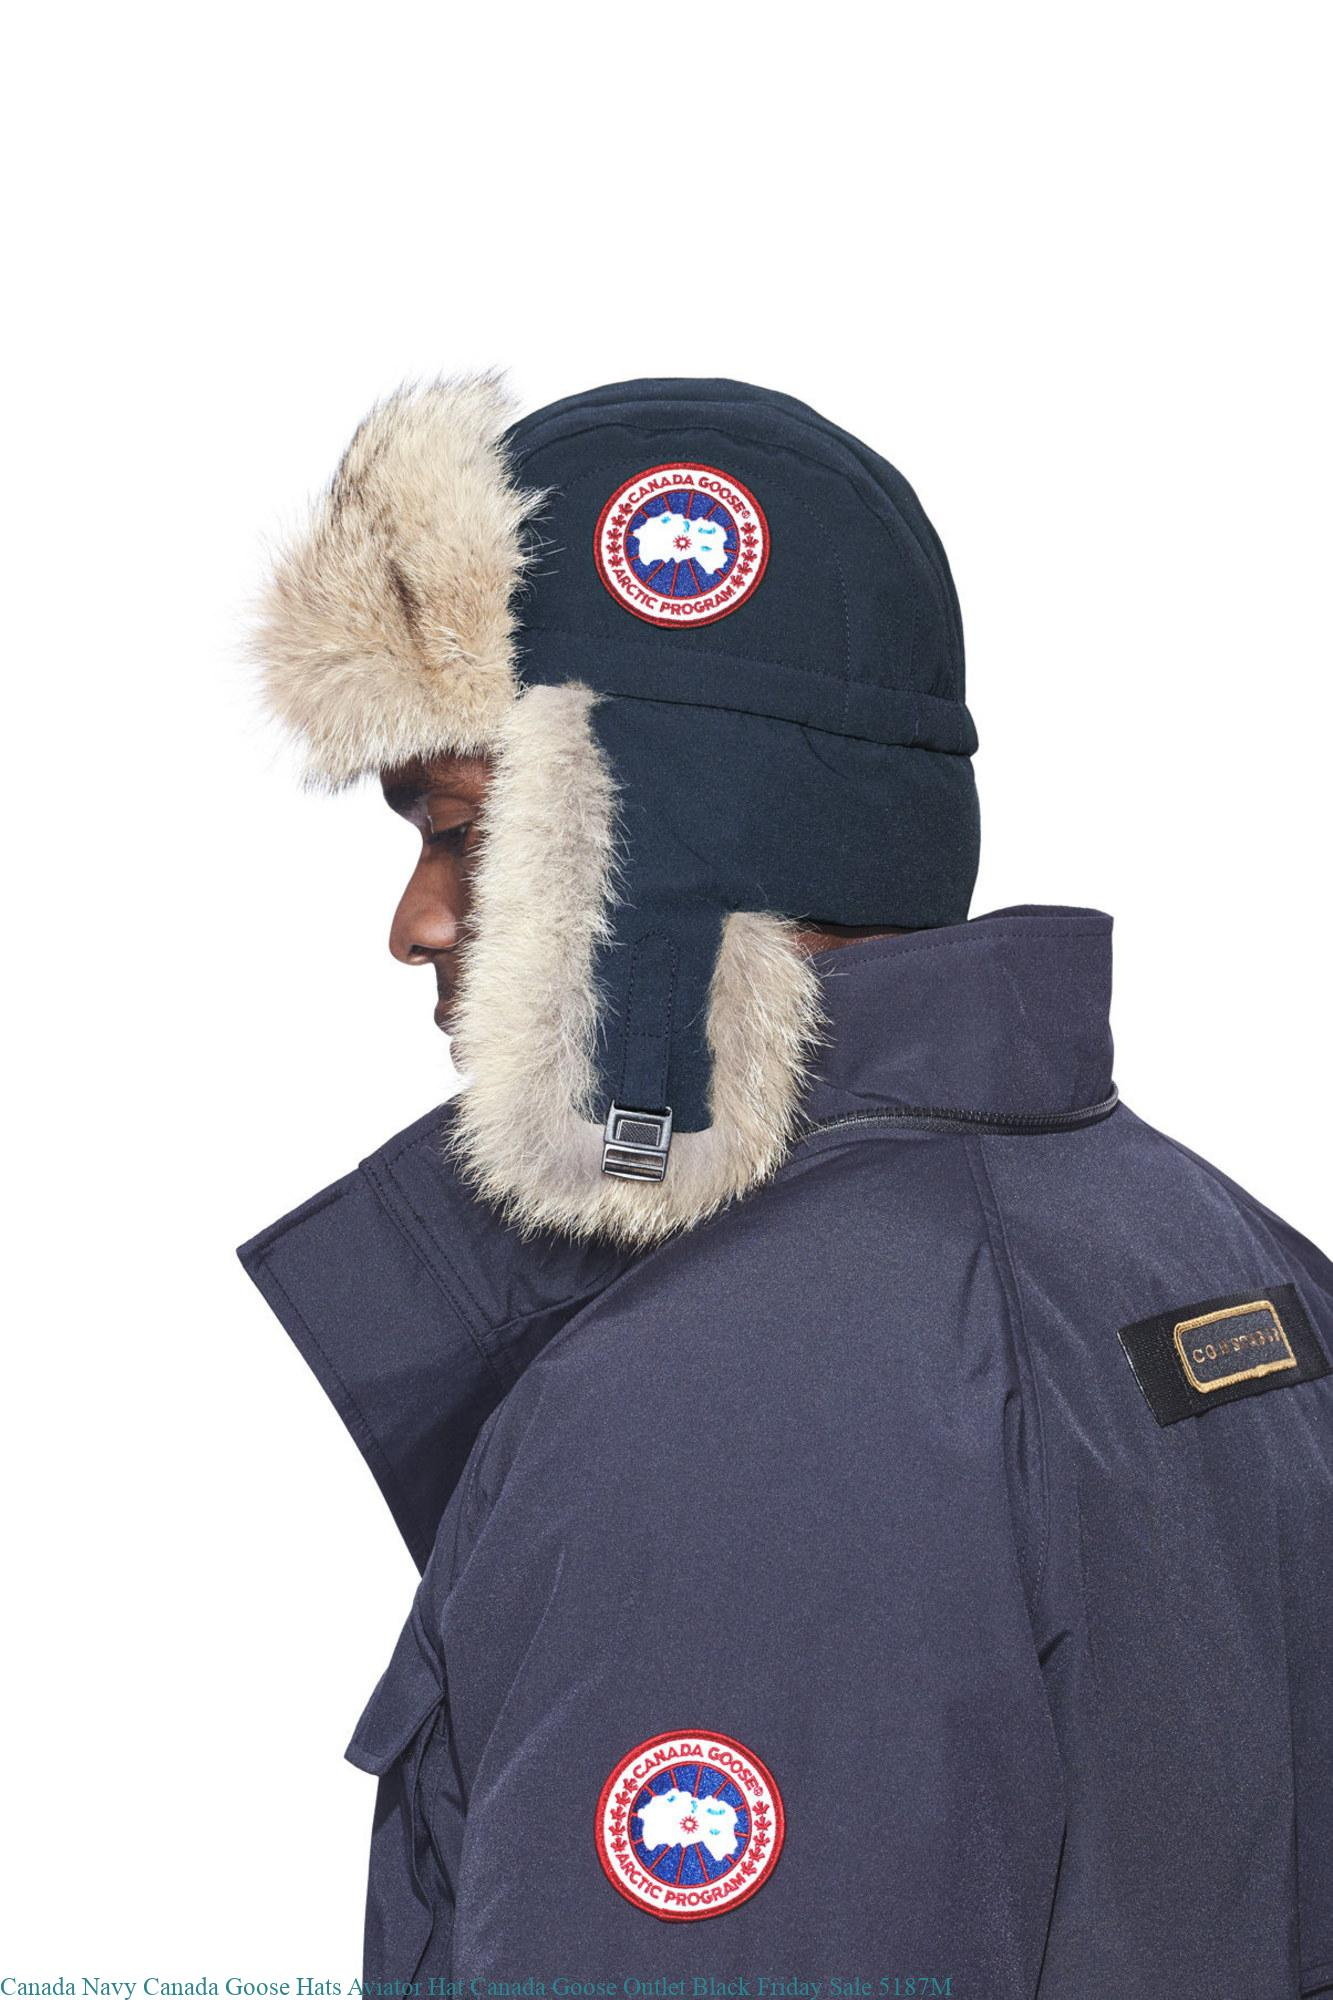 a341372d71e759 Canada Navy Canada Goose Hats Aviator Hat Canada Goose Outlet Black Friday  Sale 5187M